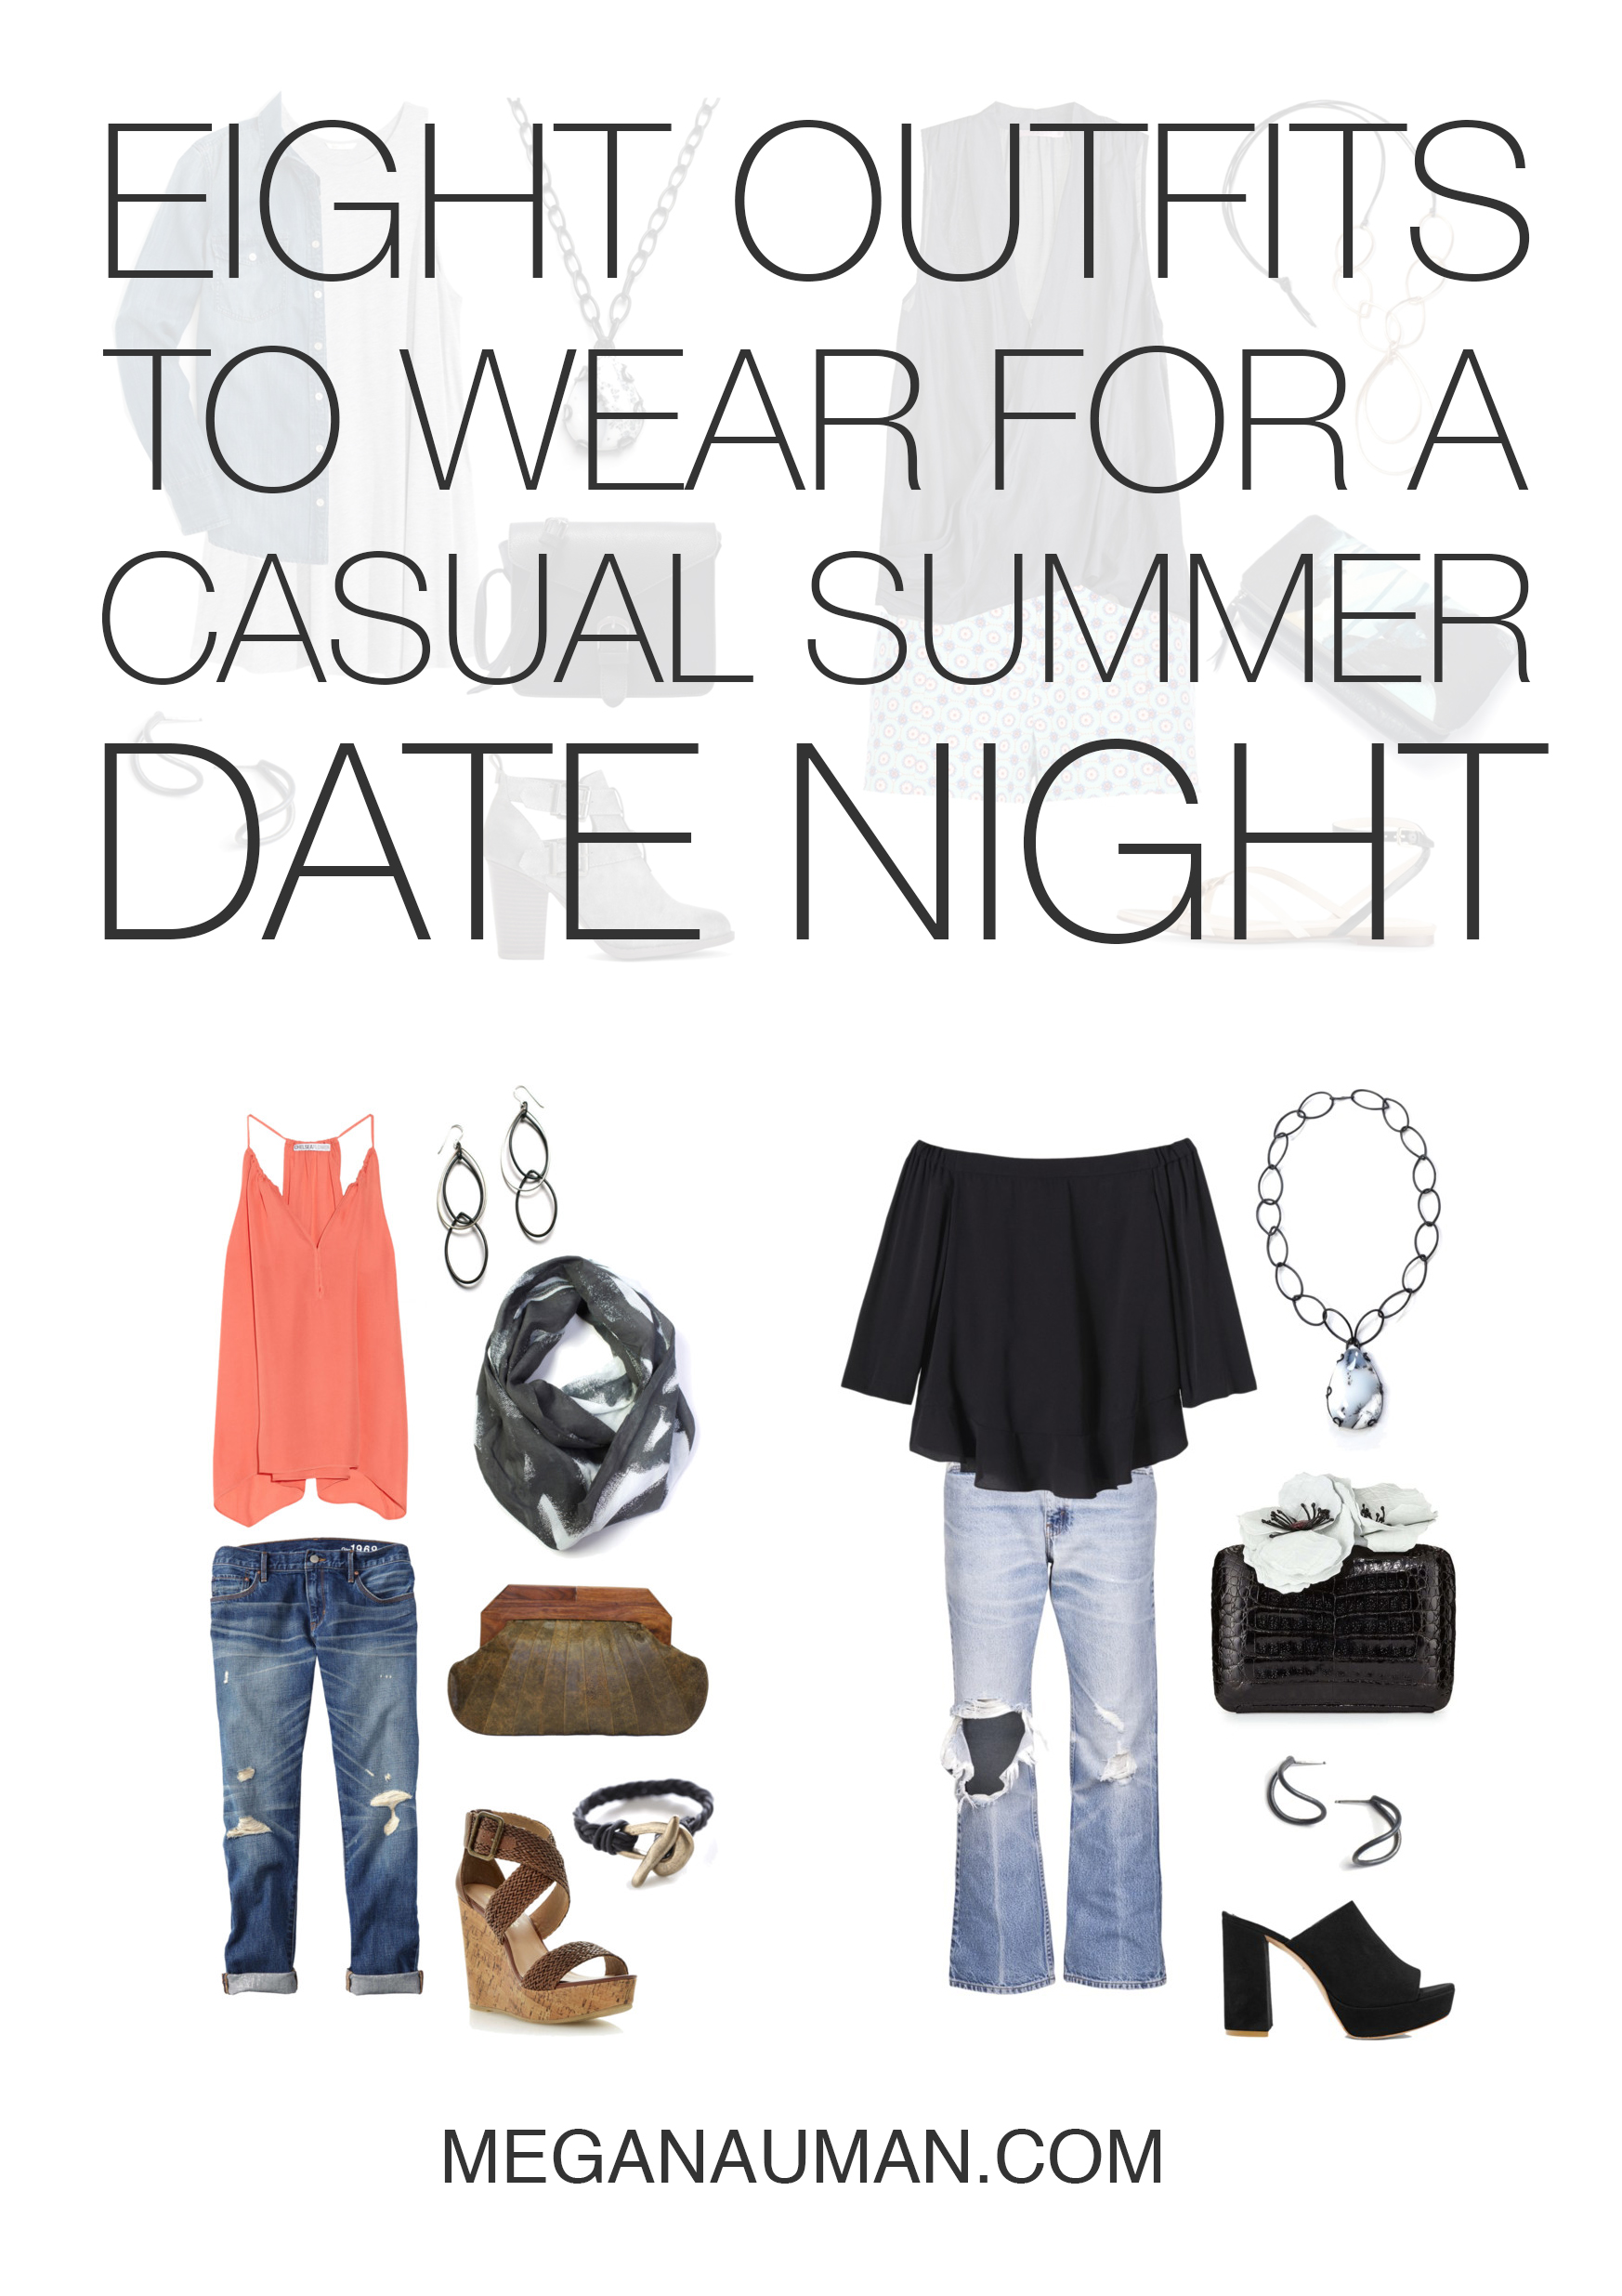 what to wear on a casual summer date night: 8 outfit ideas // click through for outfit details